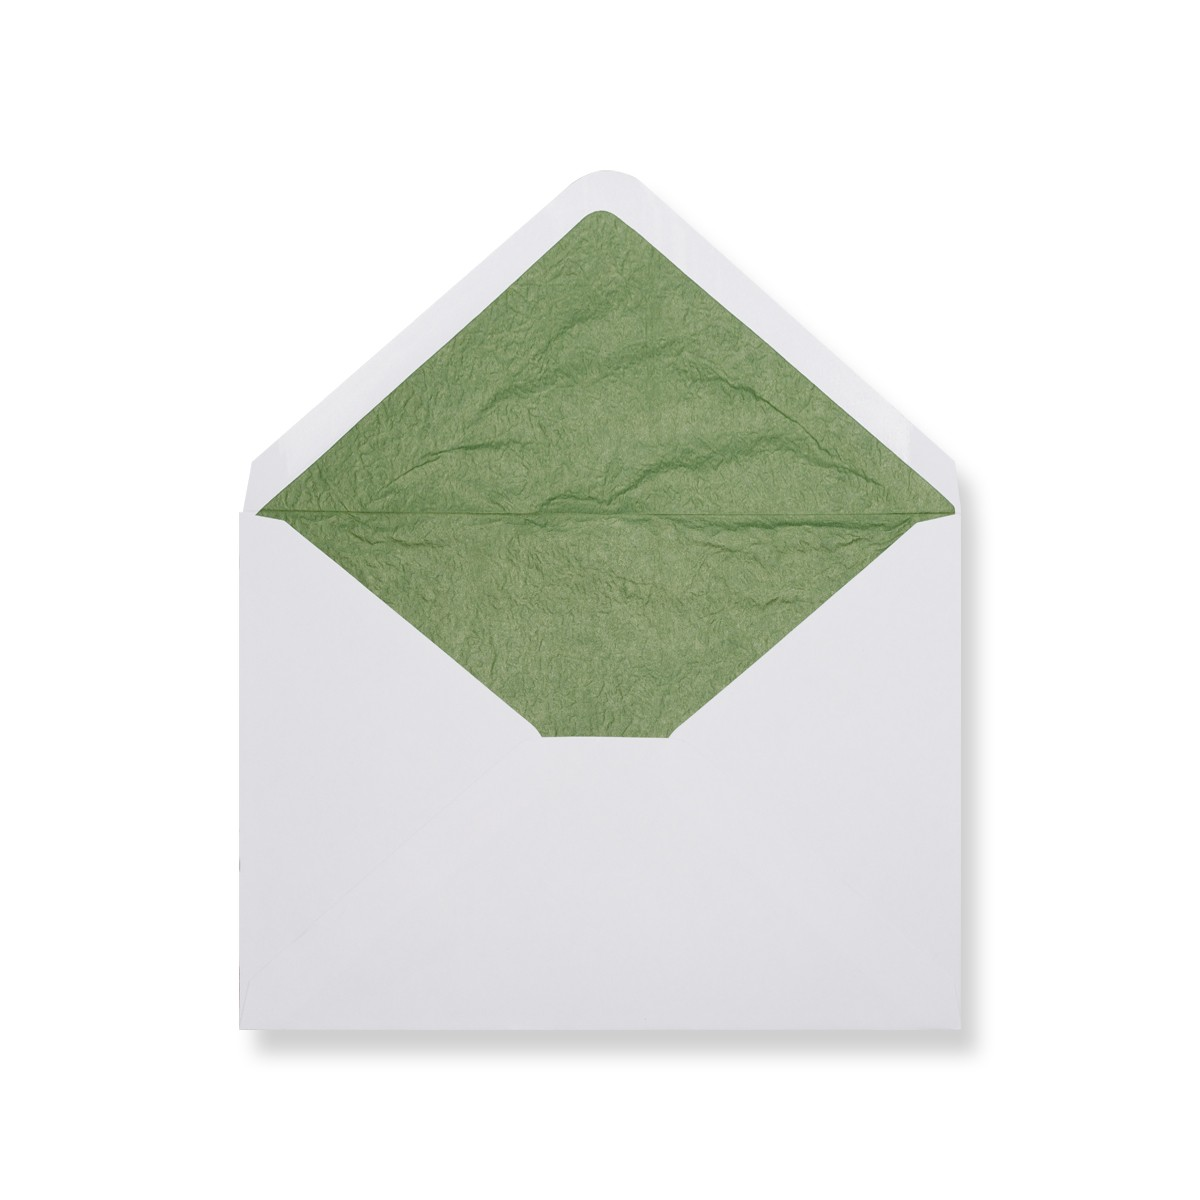 C7 White Envelopes Lined With Green Paper